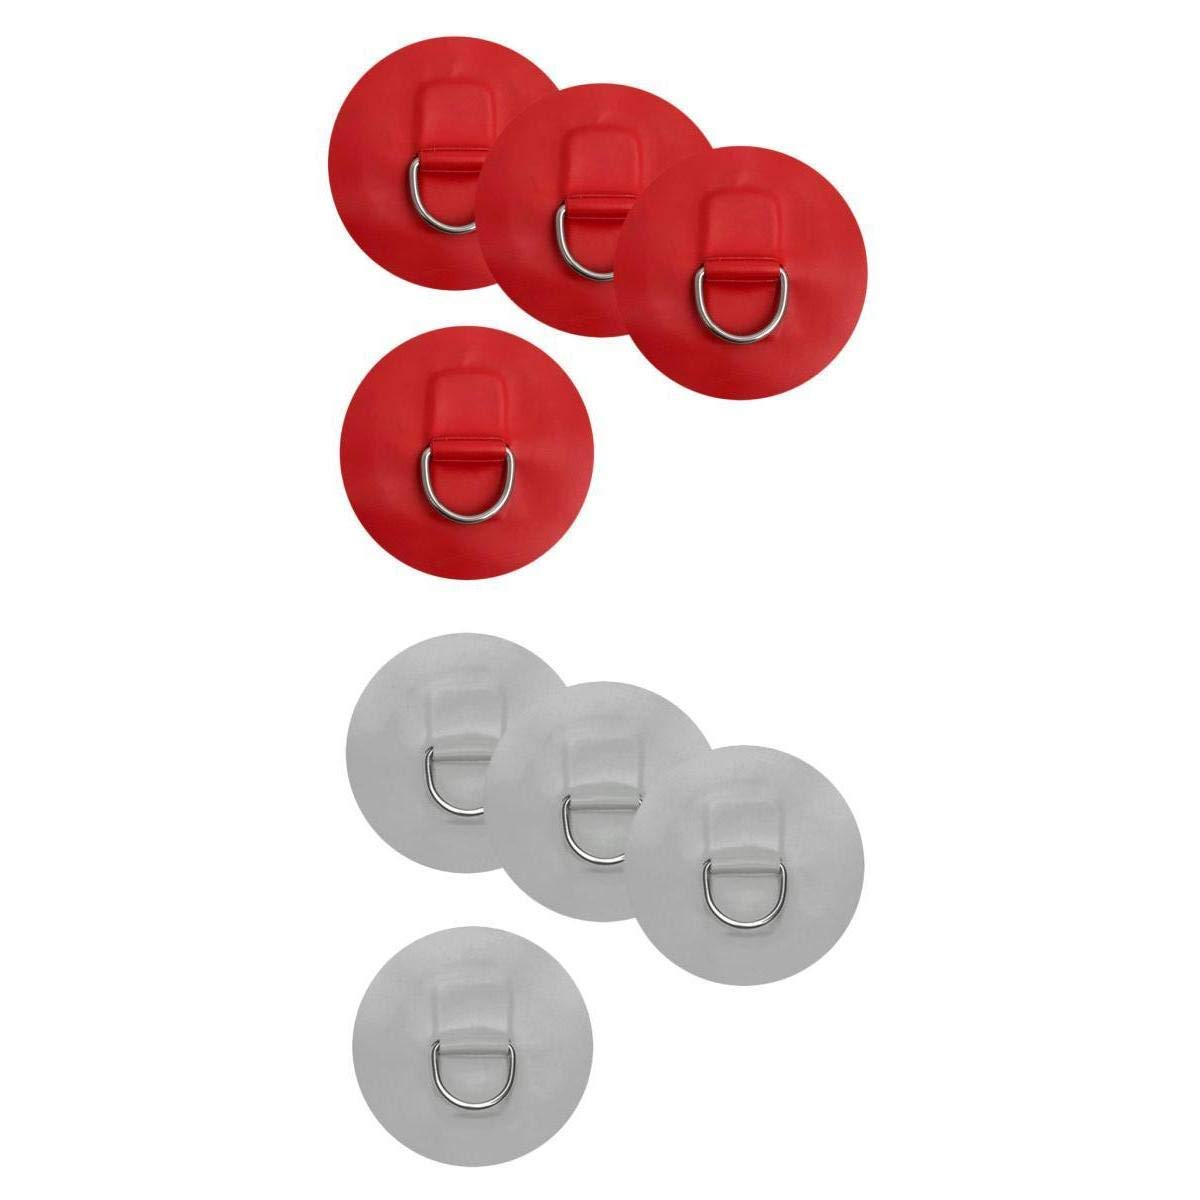 MagiDeal 8 Pieces D-Ring Pad Patch for Inflatable Boat Raft Dinghy Kayak Red & Gray